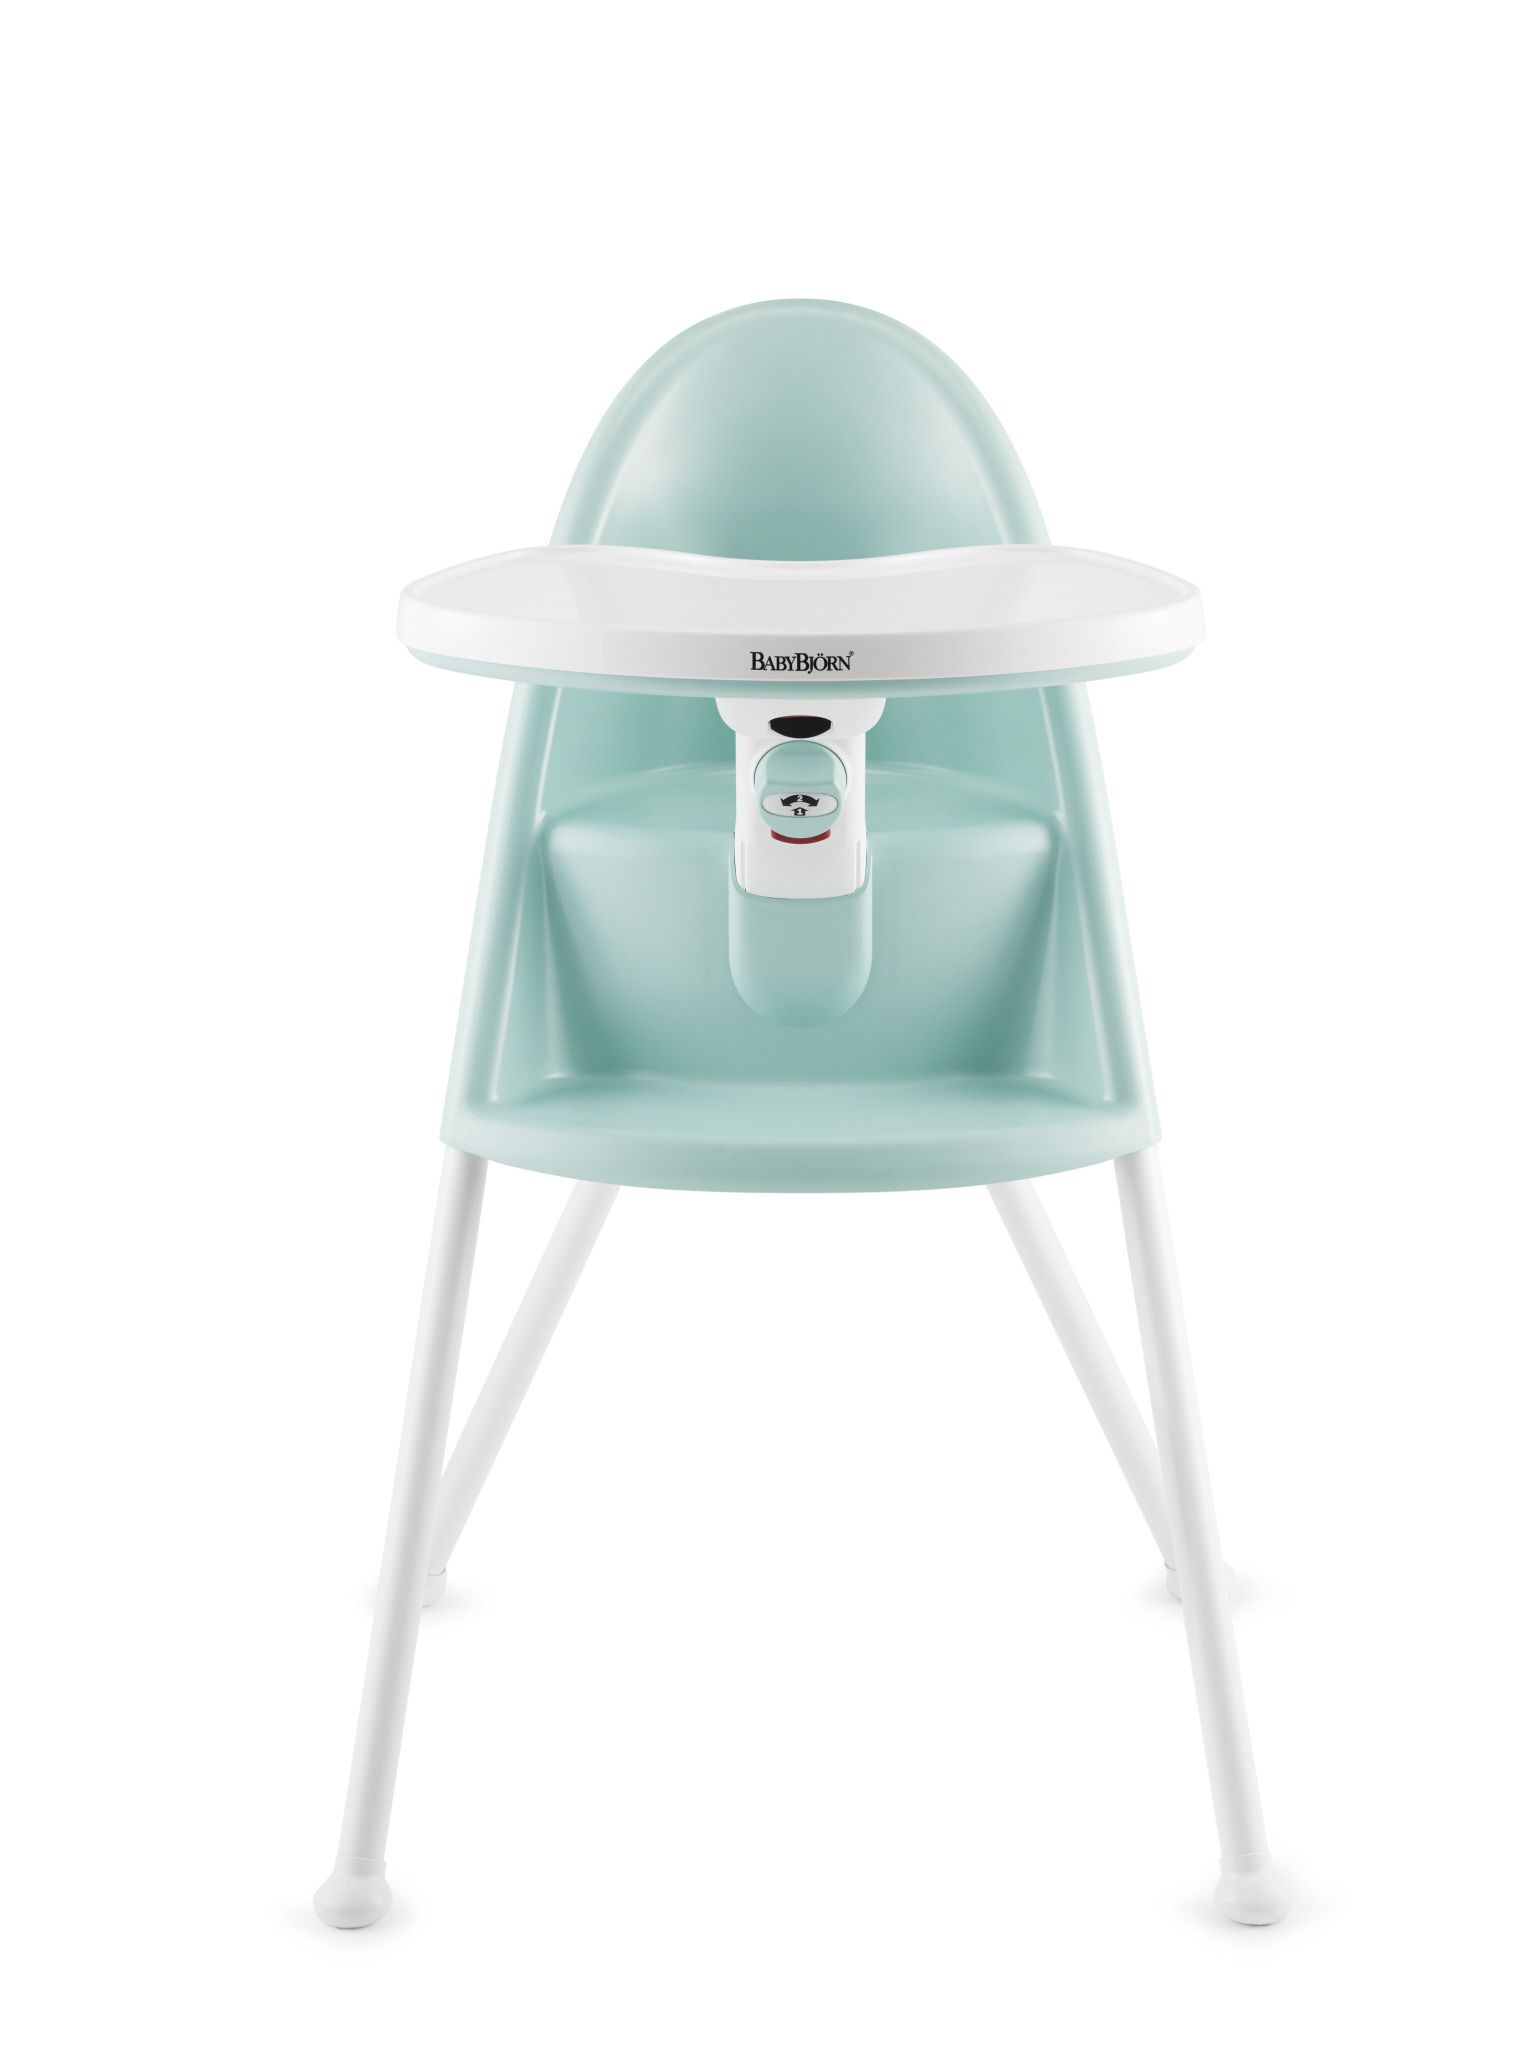 Babybjorn Highchair Chair In Turquoise Baby Bjorn Chair Chairs